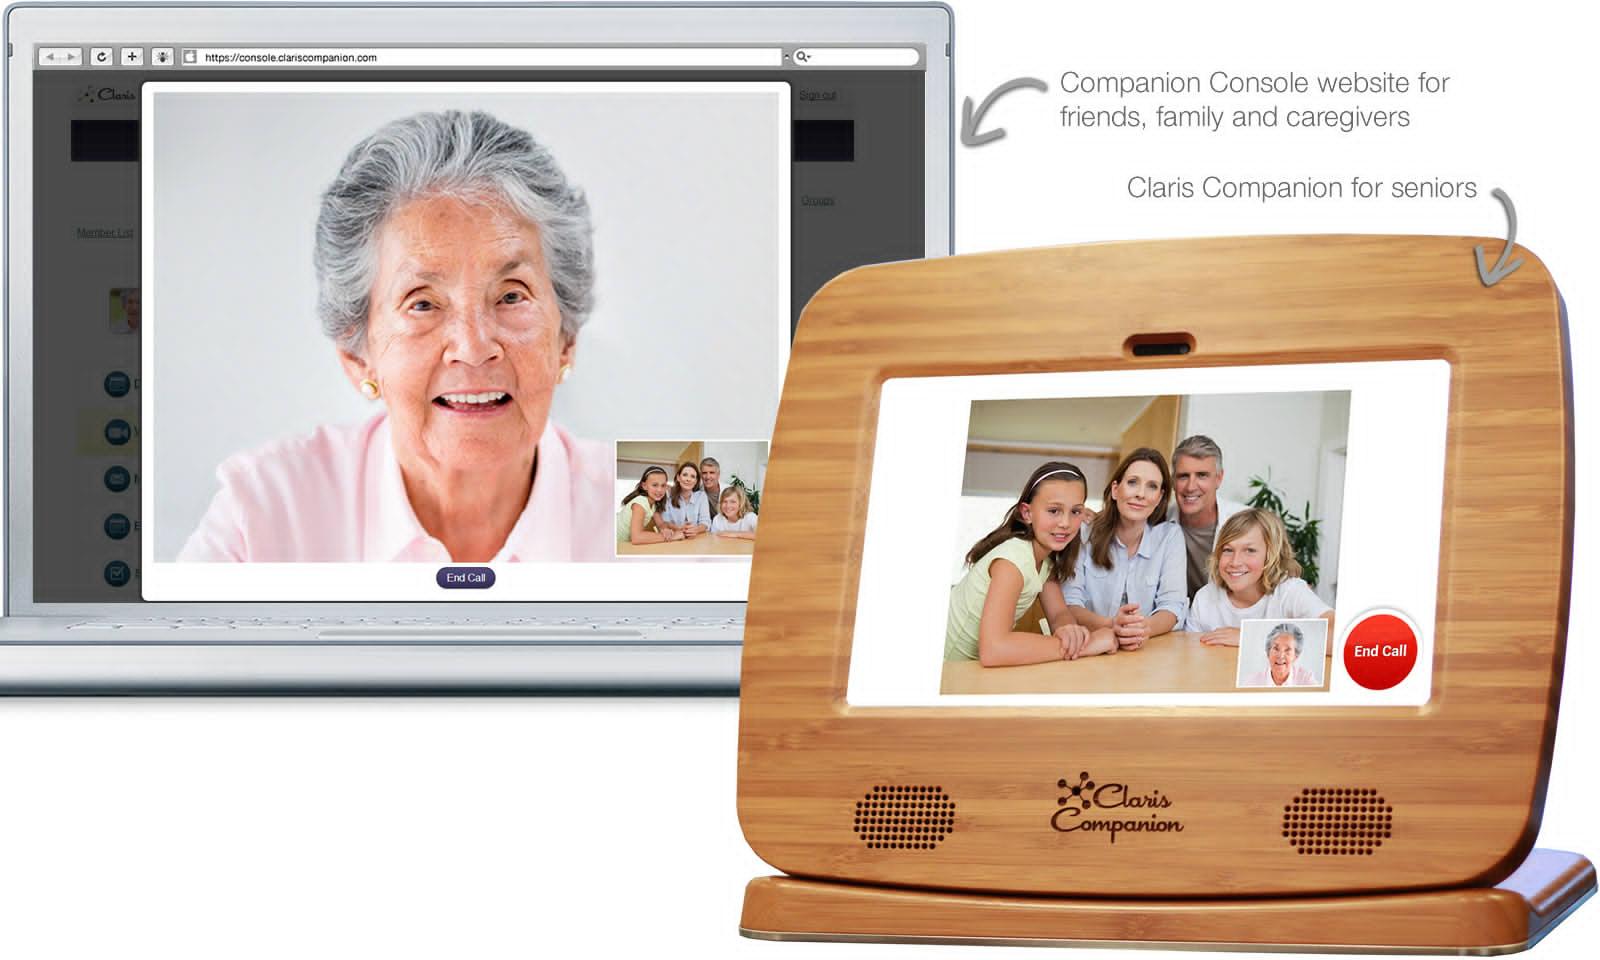 claris companion, assistive technology for seniors, gadgets for seniors; live your retirement dot com